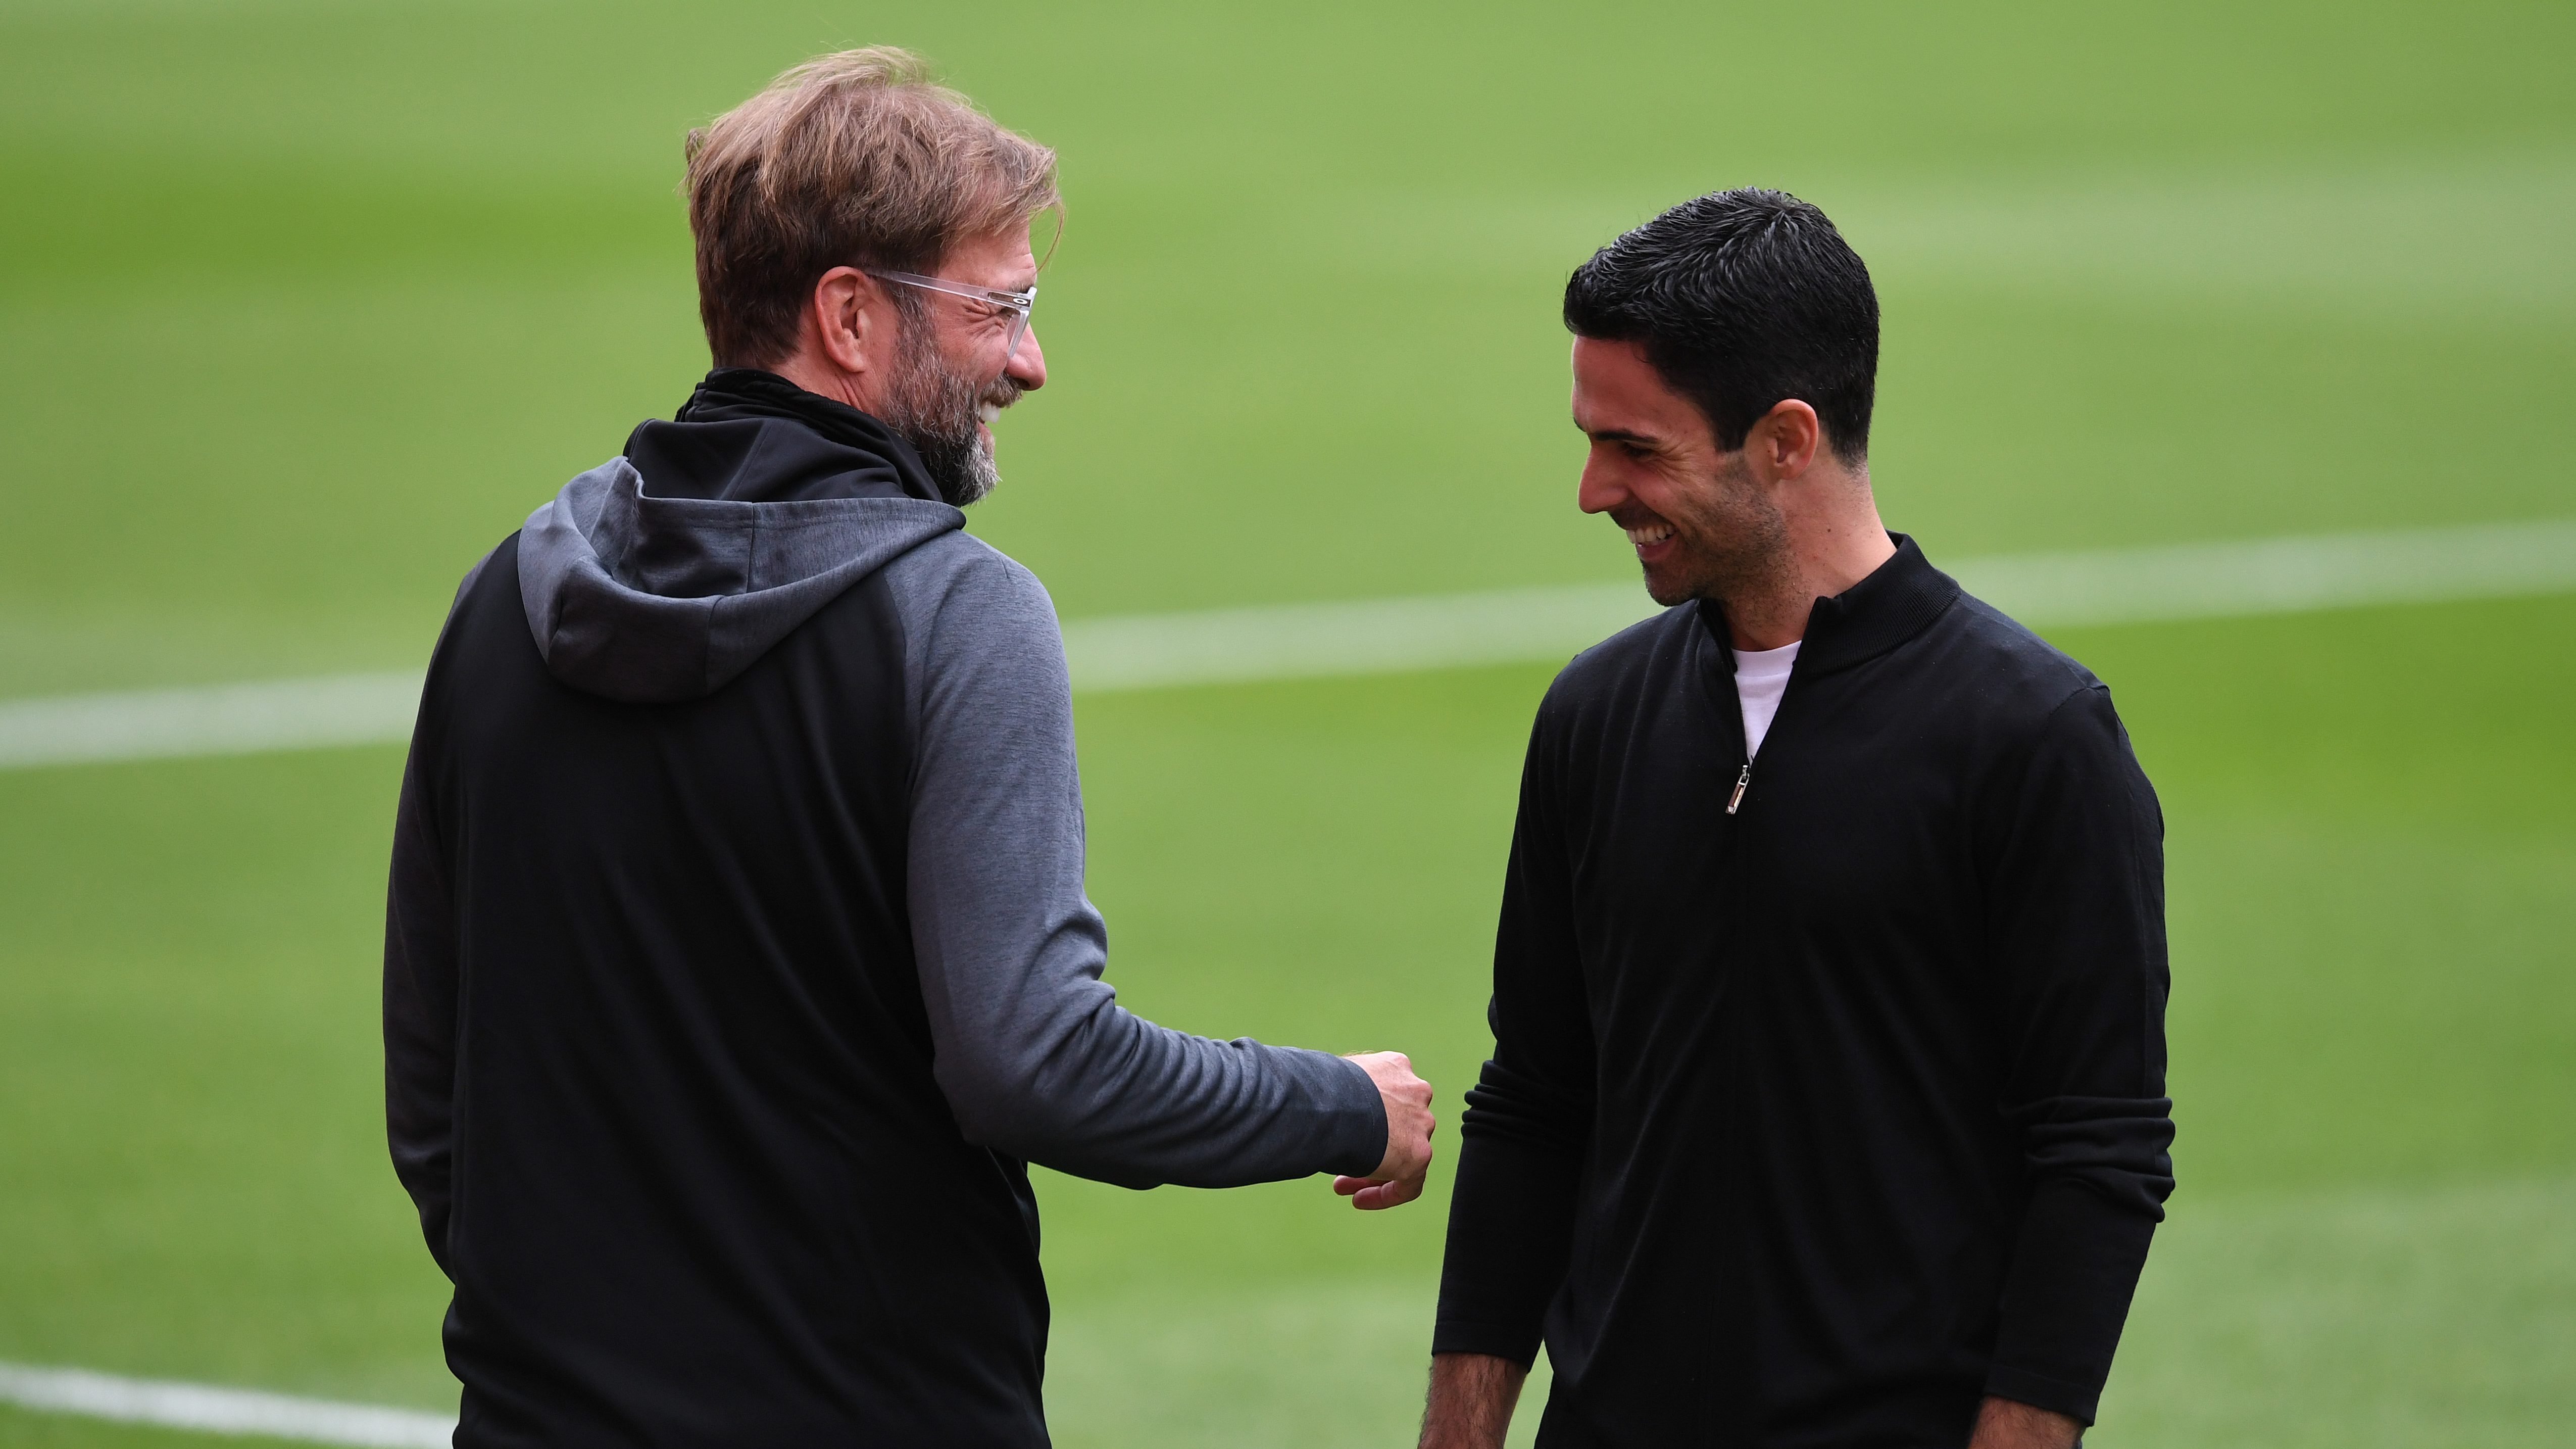 Liverpool - Arsenal: How to watch Community Shield, start time, odds